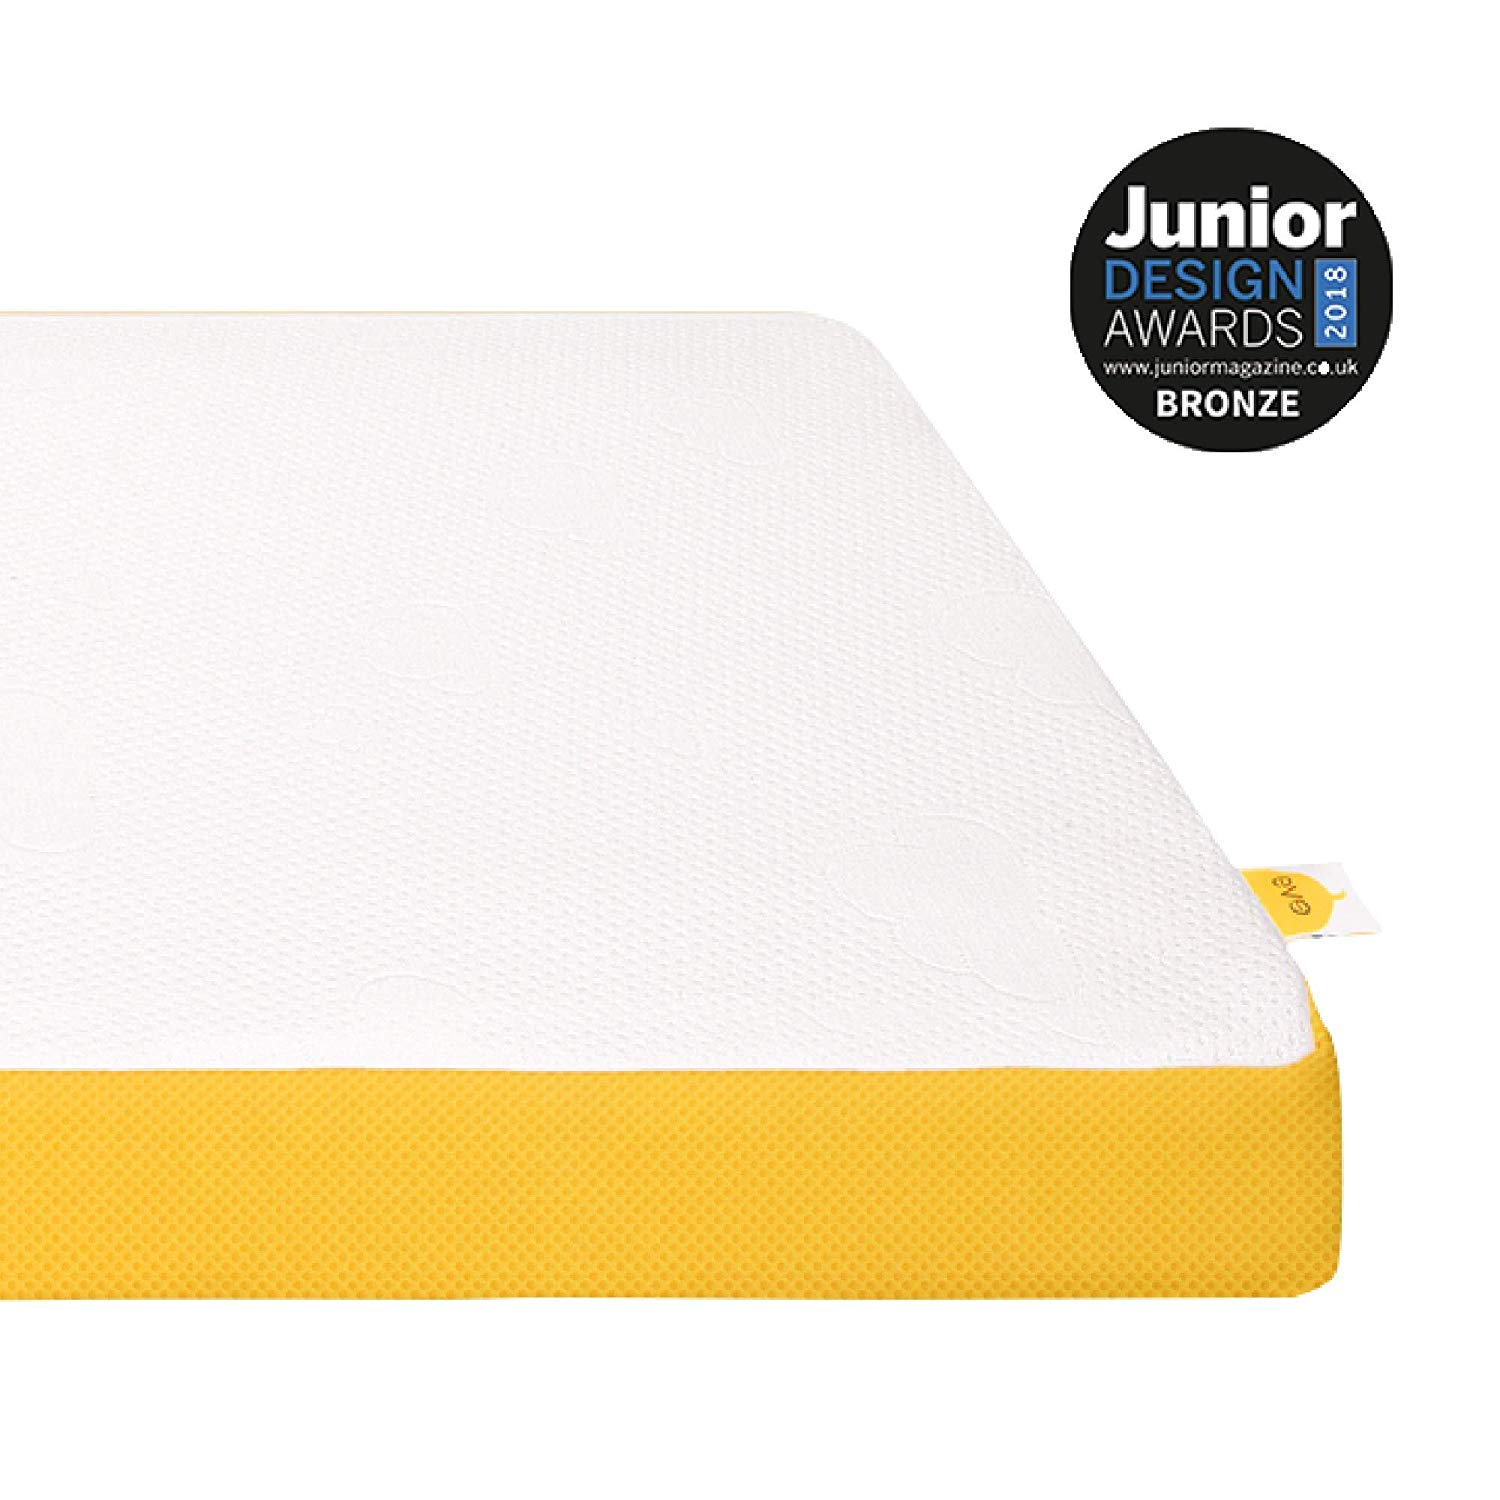 eve sleep cot bed mattress.jpg